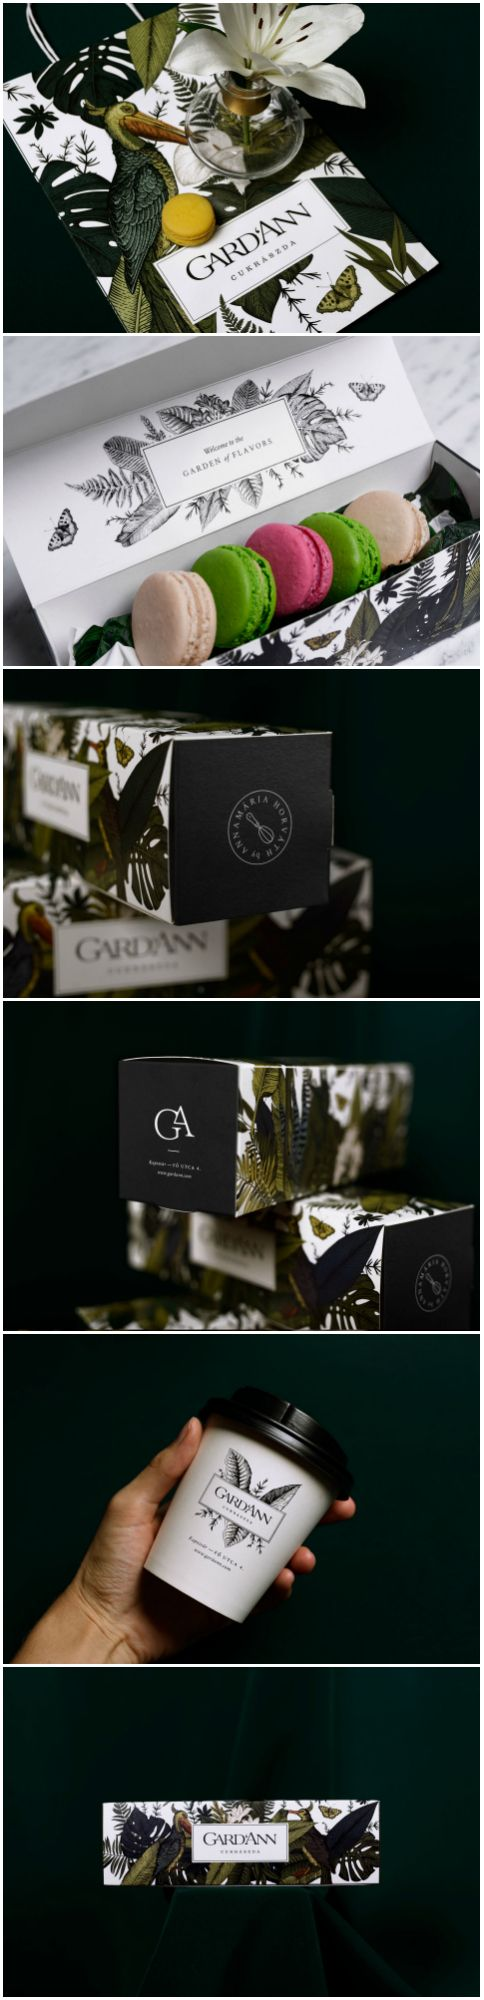 Hungarian Patisserie, Chocolate Factory and Cafe Branding, Packaging and Interior Design  Design Agency: kissmiklos Brand / Project Name: Gard'Ann patisserie Location: Hungary Category: #Bakery  World Brand & Packaging Design Society